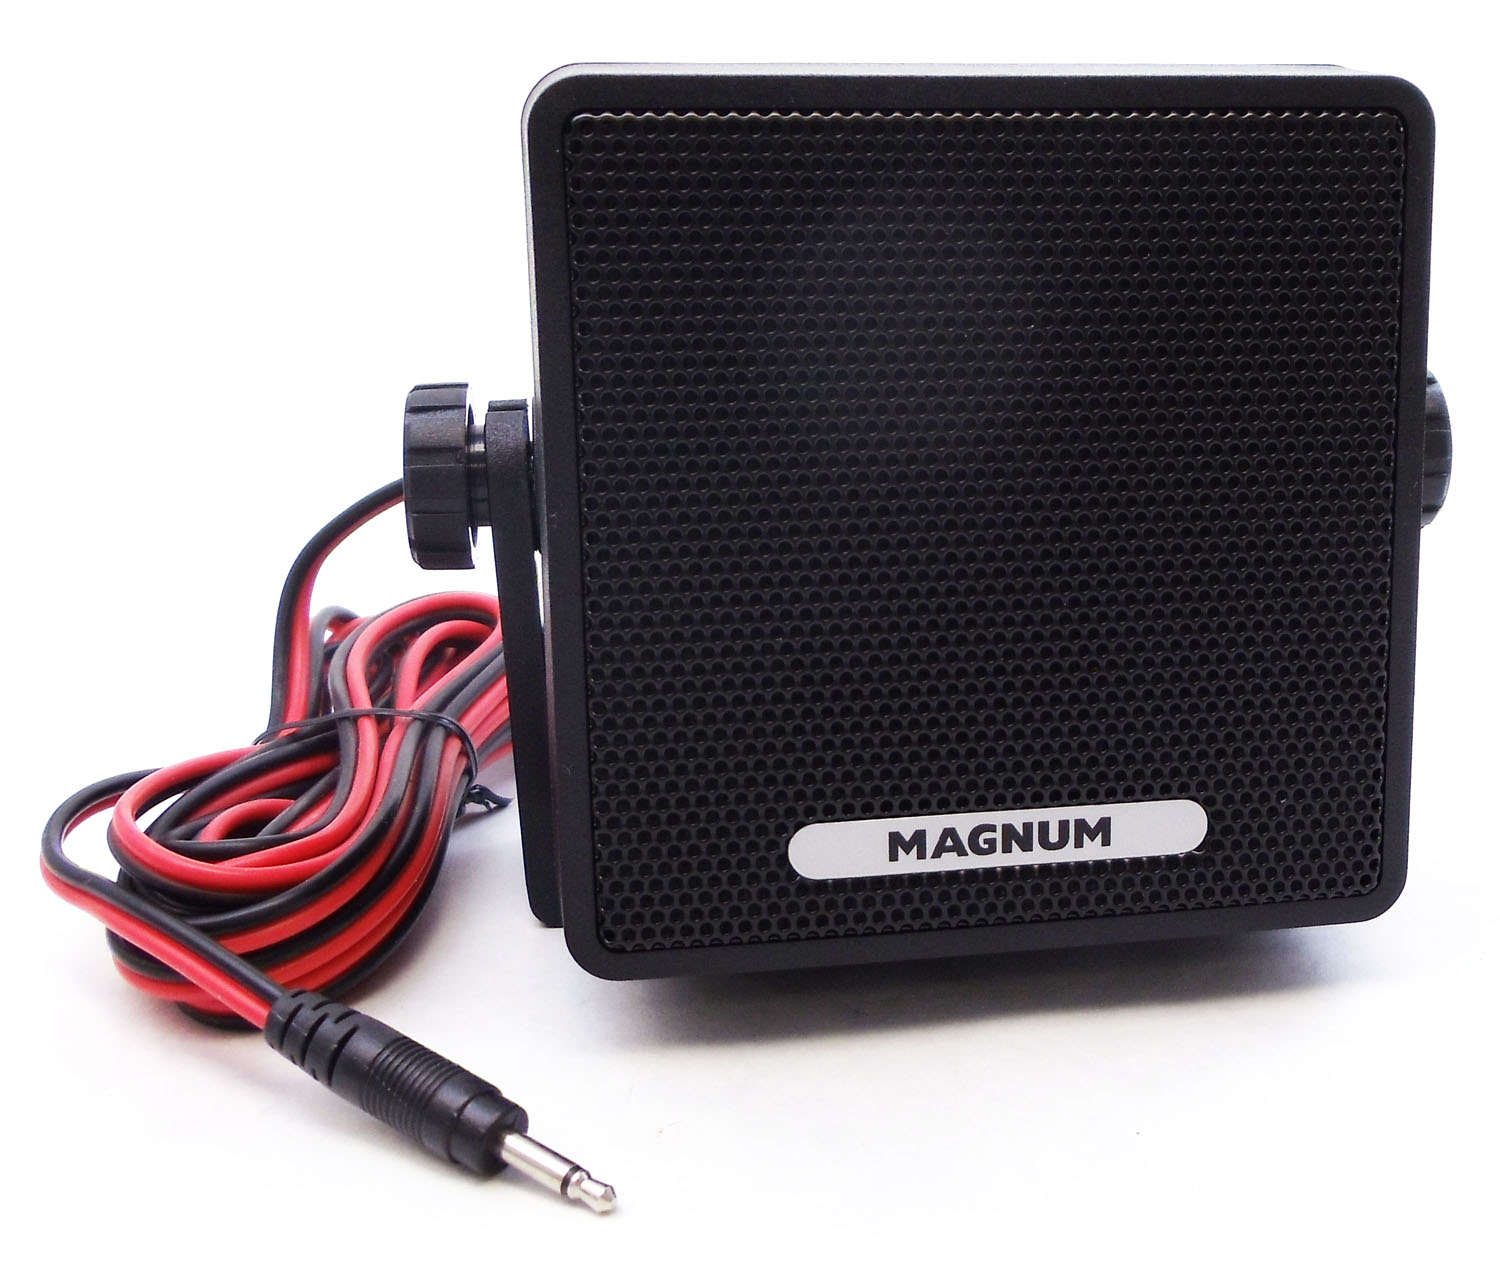 MAGNUM 12 WATT 8 OHM HEAVY DUTY EXTENTION SPEAKER WITH CABLE & PLUG